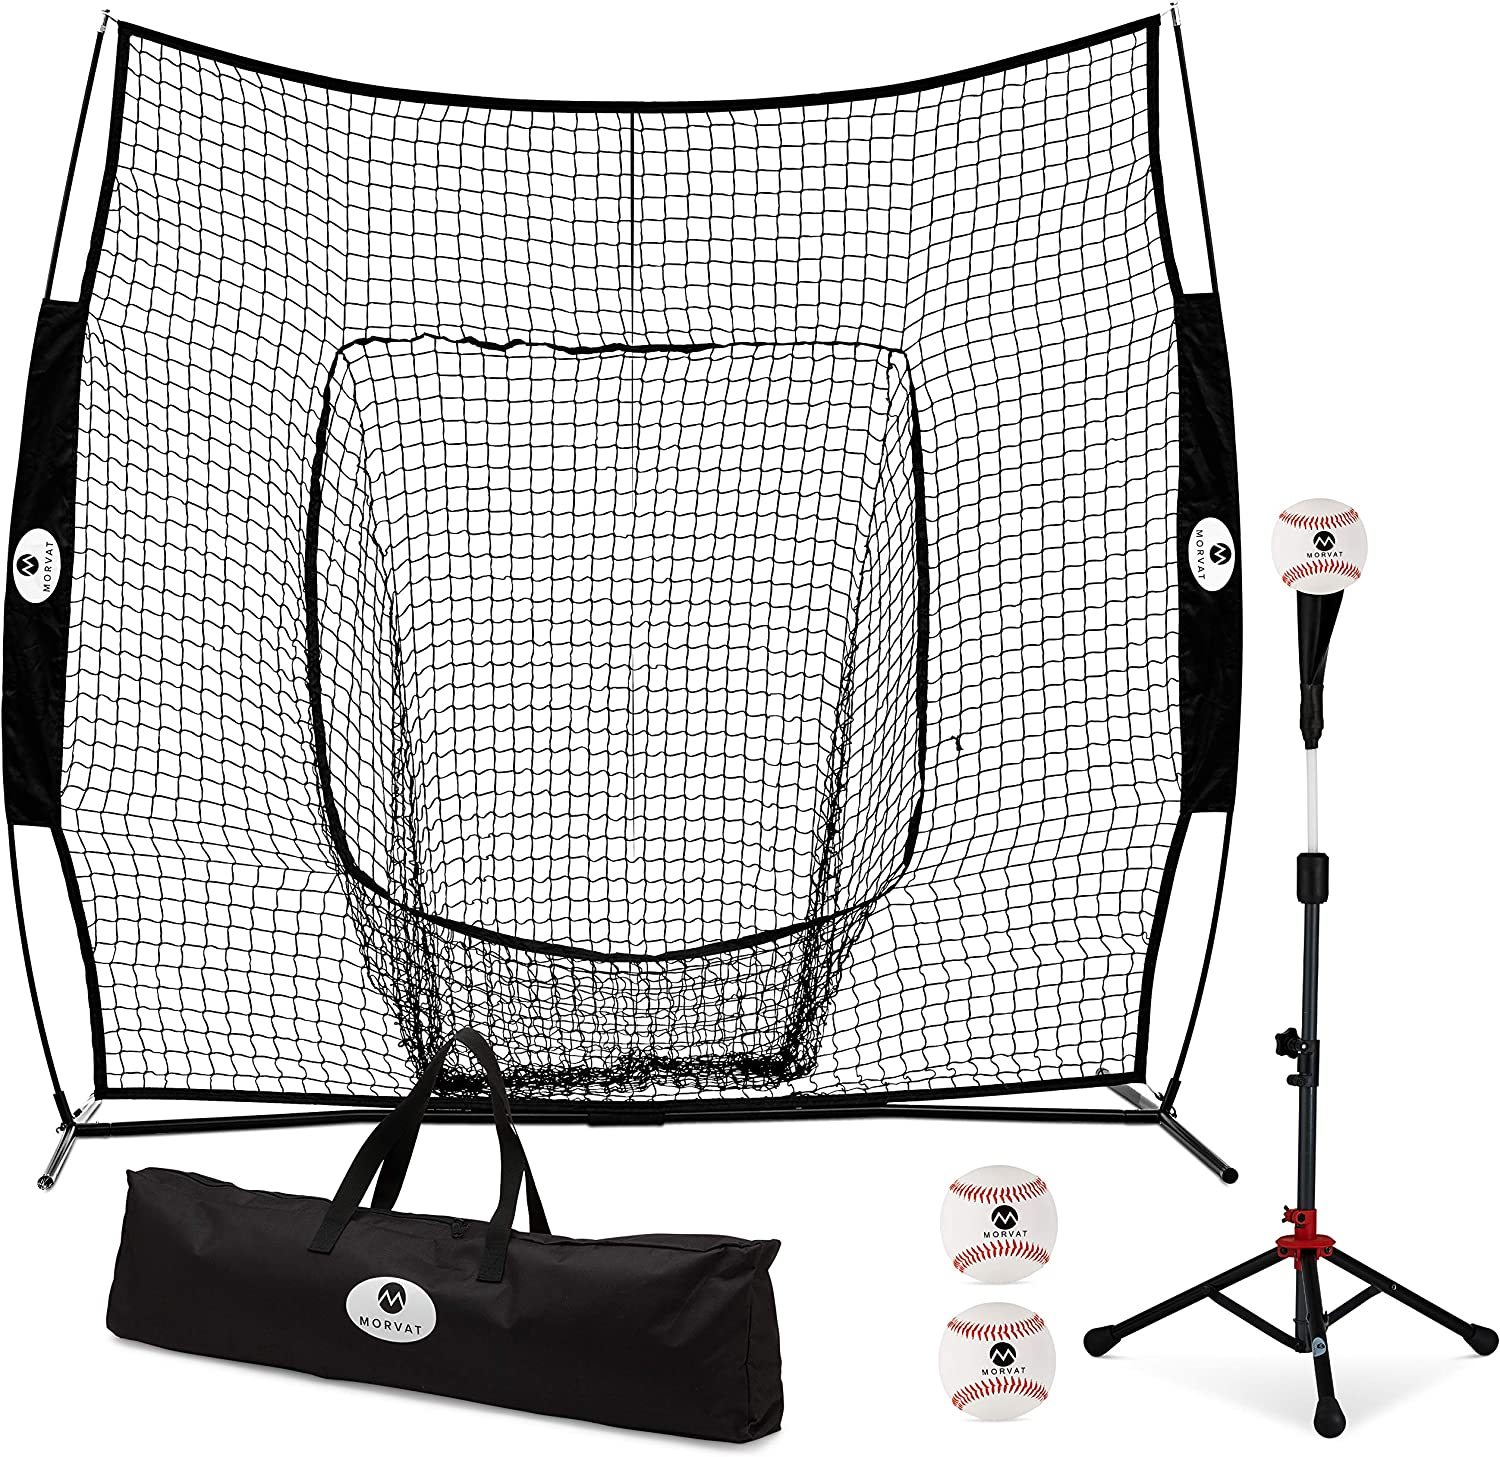 Morvat Baseball Net and Baseball Tee Bundle, Baseball Pitching Net, Baseball Training Equipment for Hitting and Pitching, Baseball Accessories, Bownet Includes 3 Softballs and Carry Bag, 7 x7